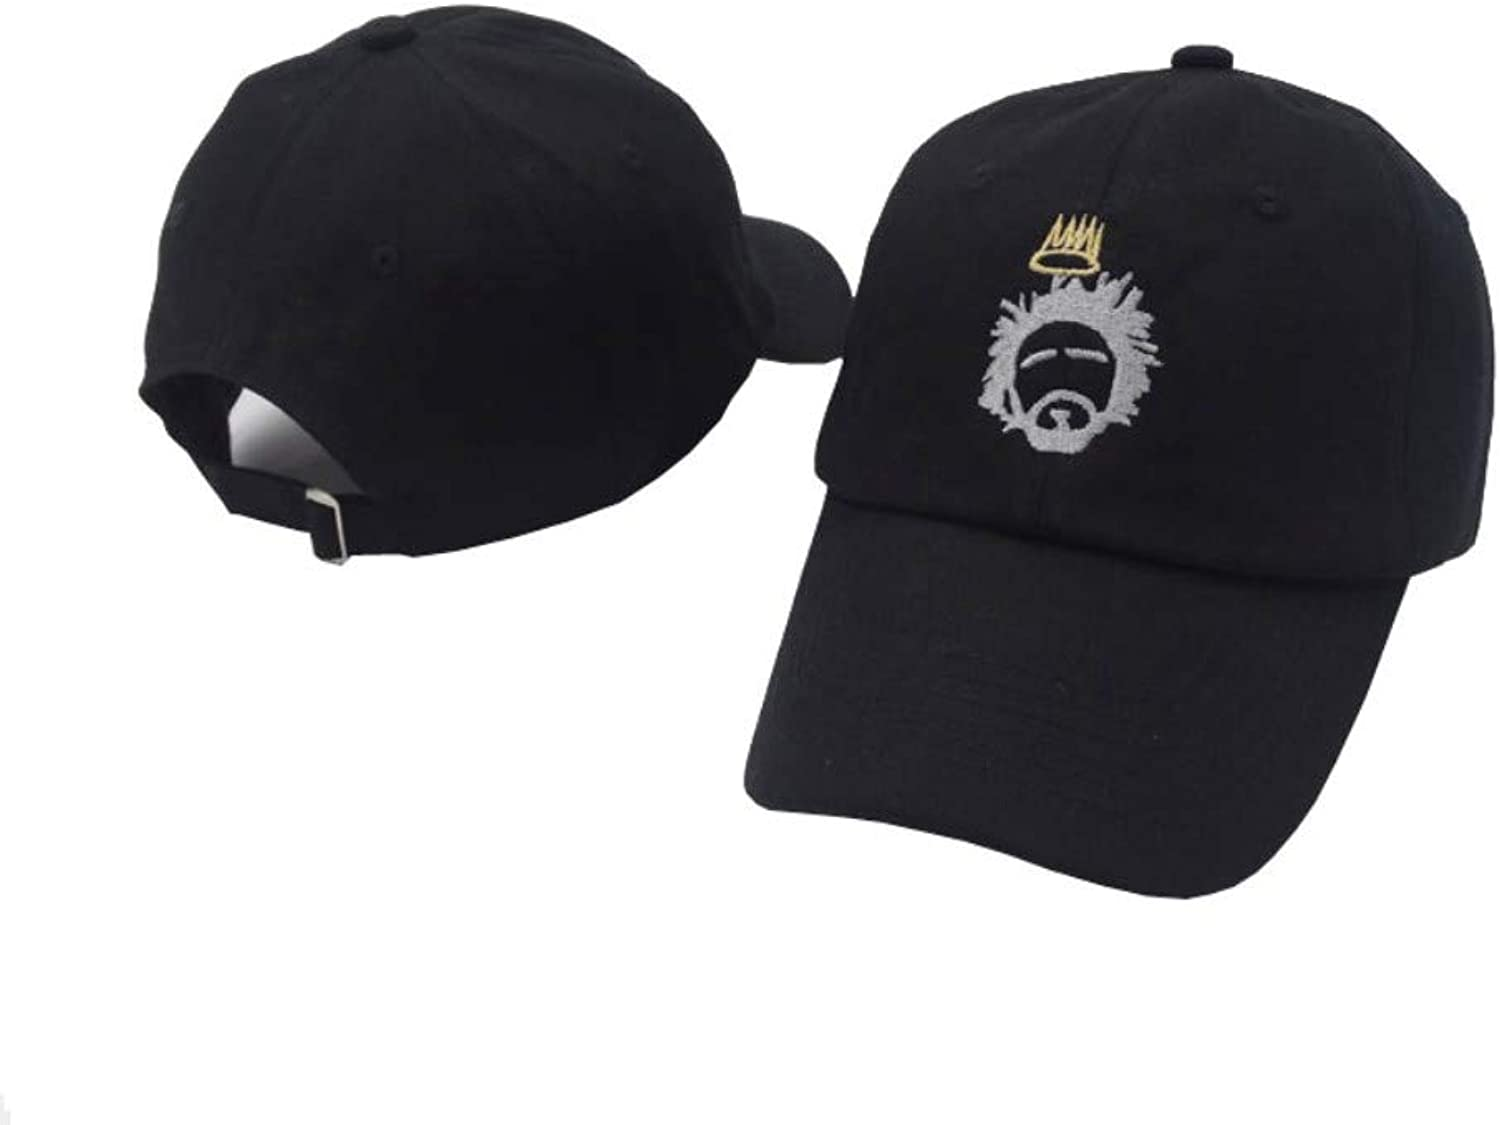 ee7bc217fc7c Chlally Cap Curved Hat 100% Cotton Cole Brand Snapback Cap,Black ...